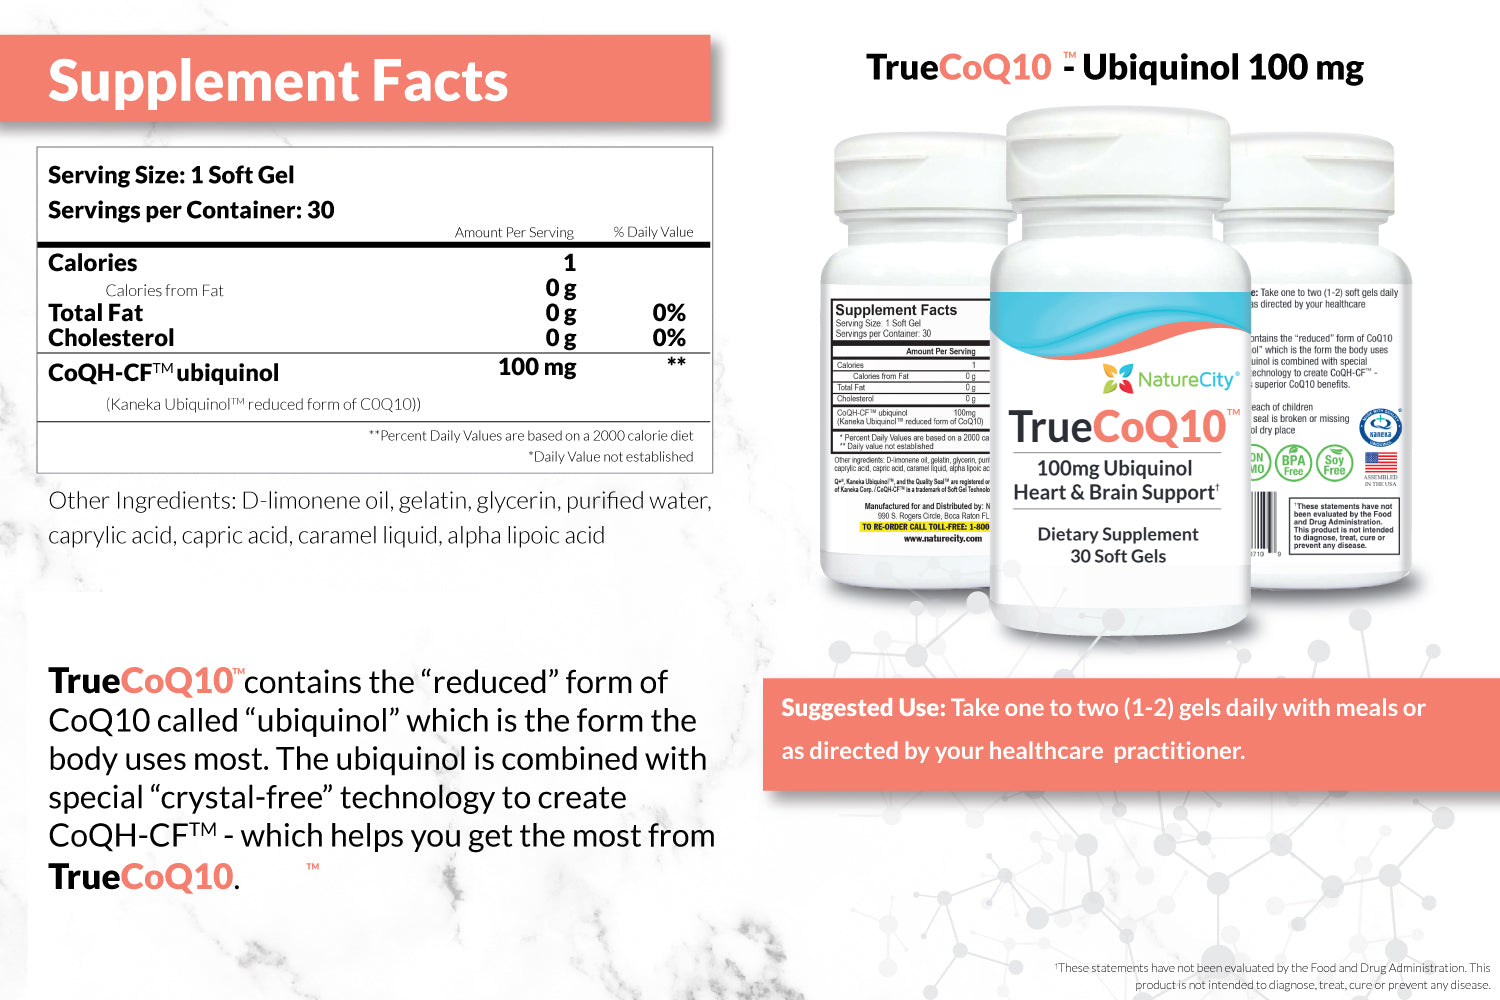 TrueCoQ10 Stabilized Supplement Facts and Suggested Use